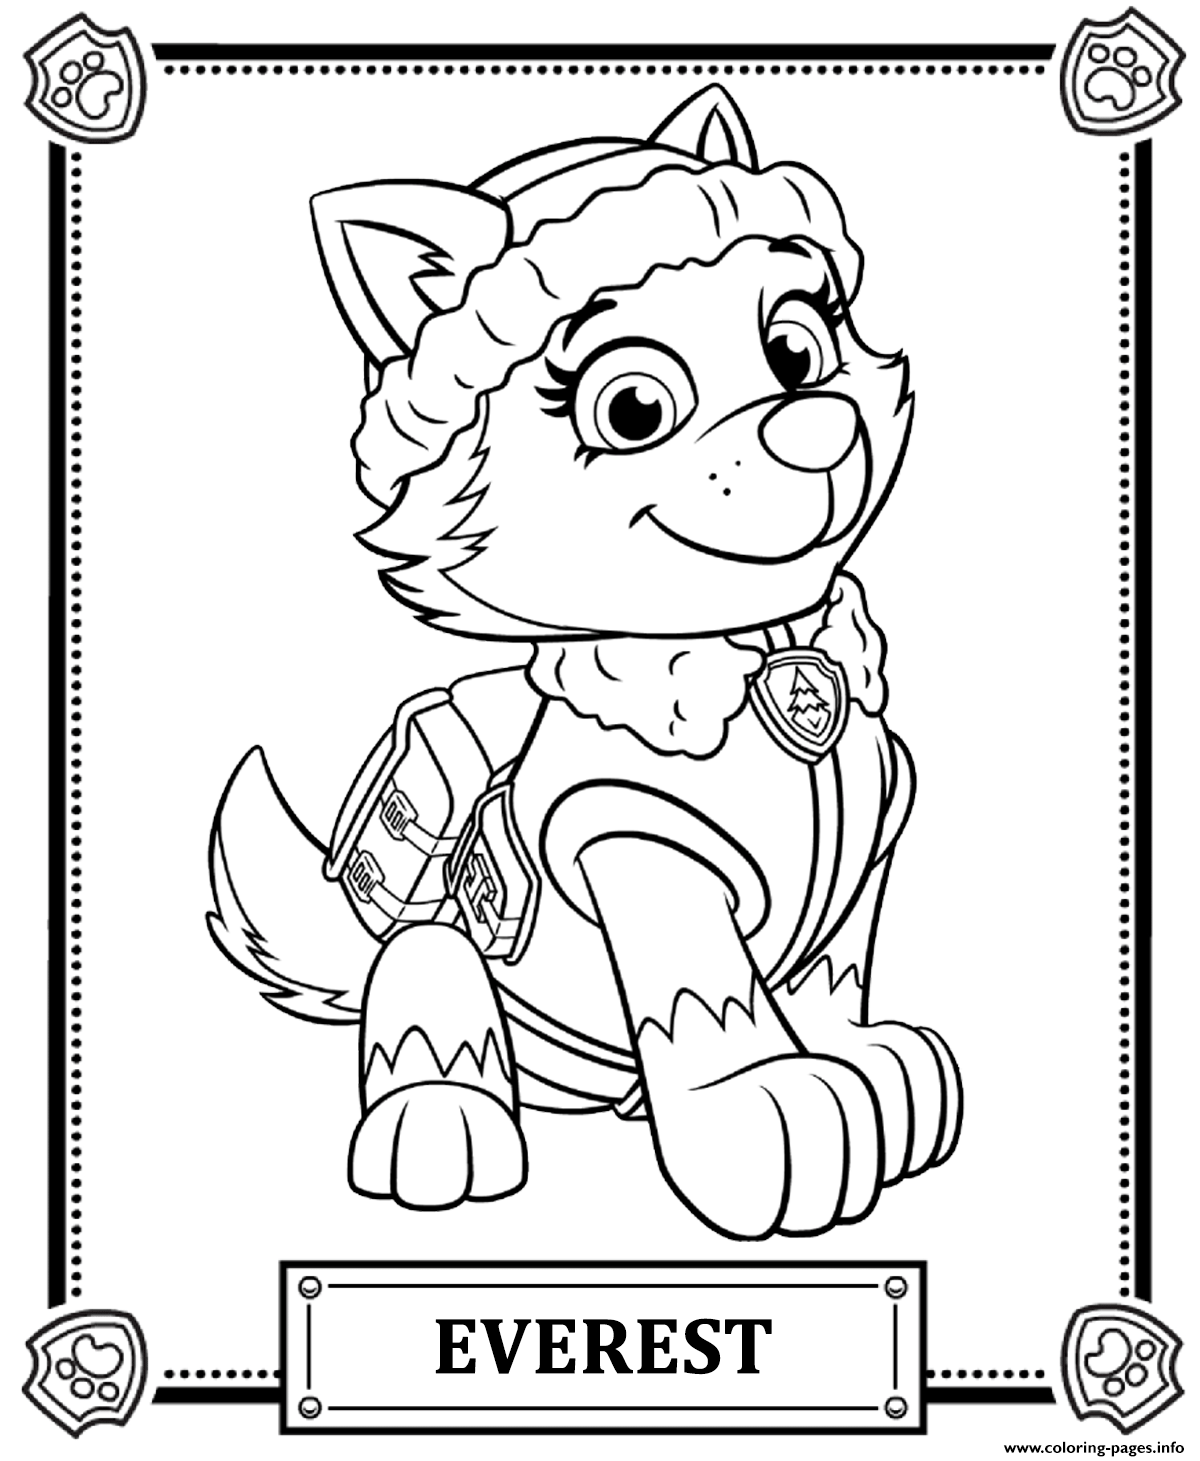 Print paw patrol everest coloring